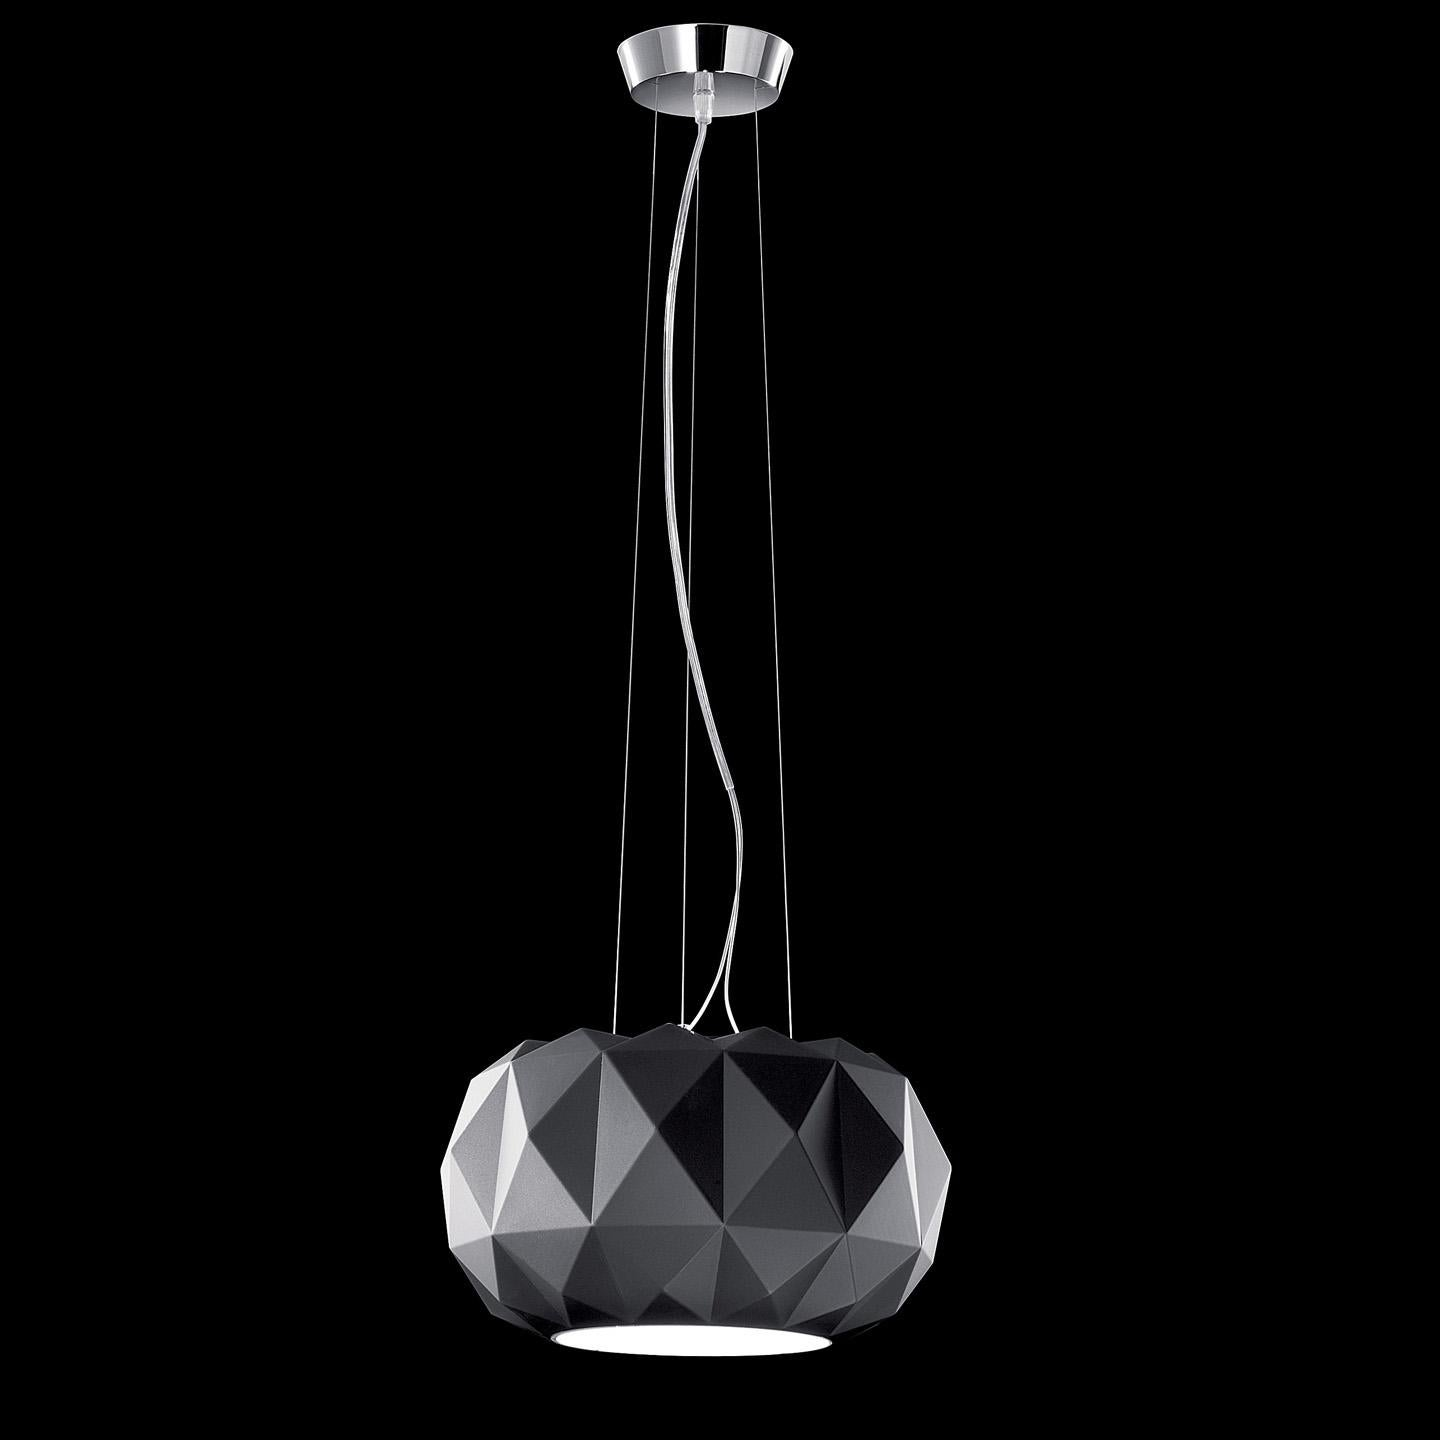 Leucos Deluxe S 35 LED Pendant Light in Matte Black and Chrome by Archirivolto